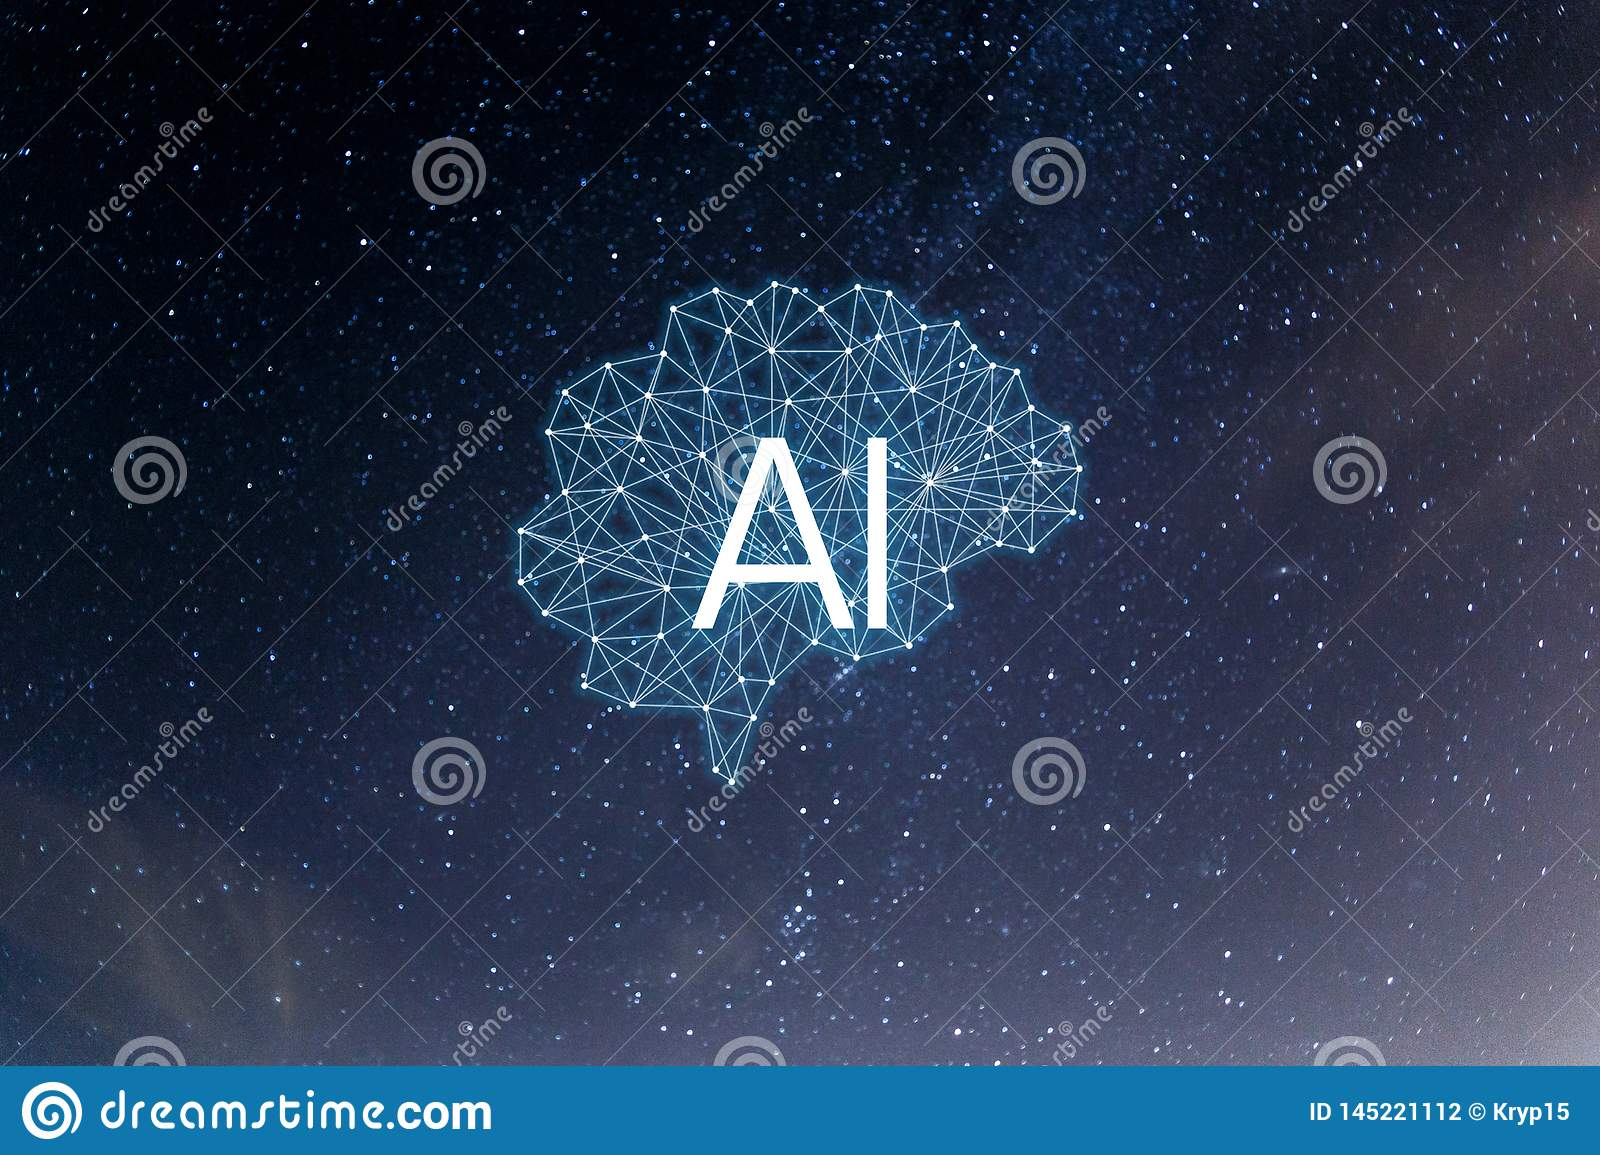 Concept AIArtificial Intelligence